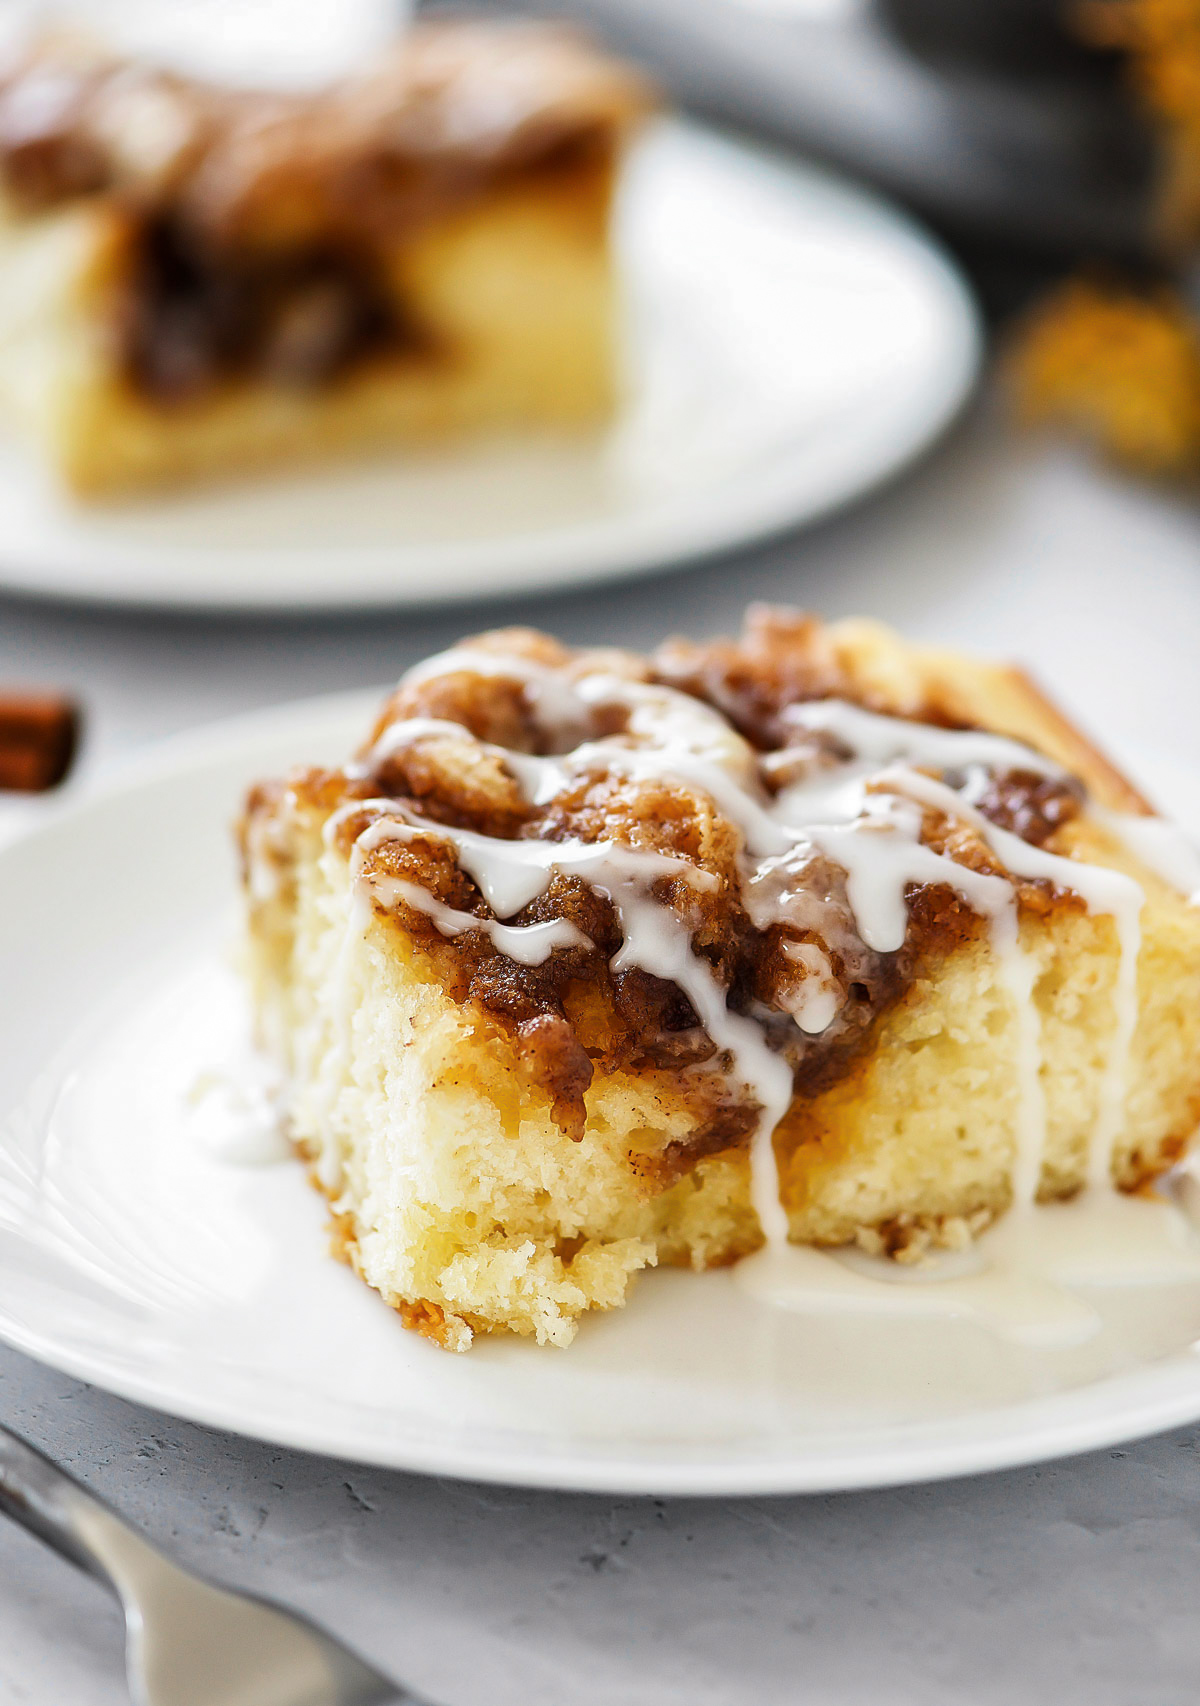 Cinnamon Roll Cake is a moist and buttery cinnamon cake with a creamy vanilla glaze drizzled over the top. Life-in-the-Lofthouse.com